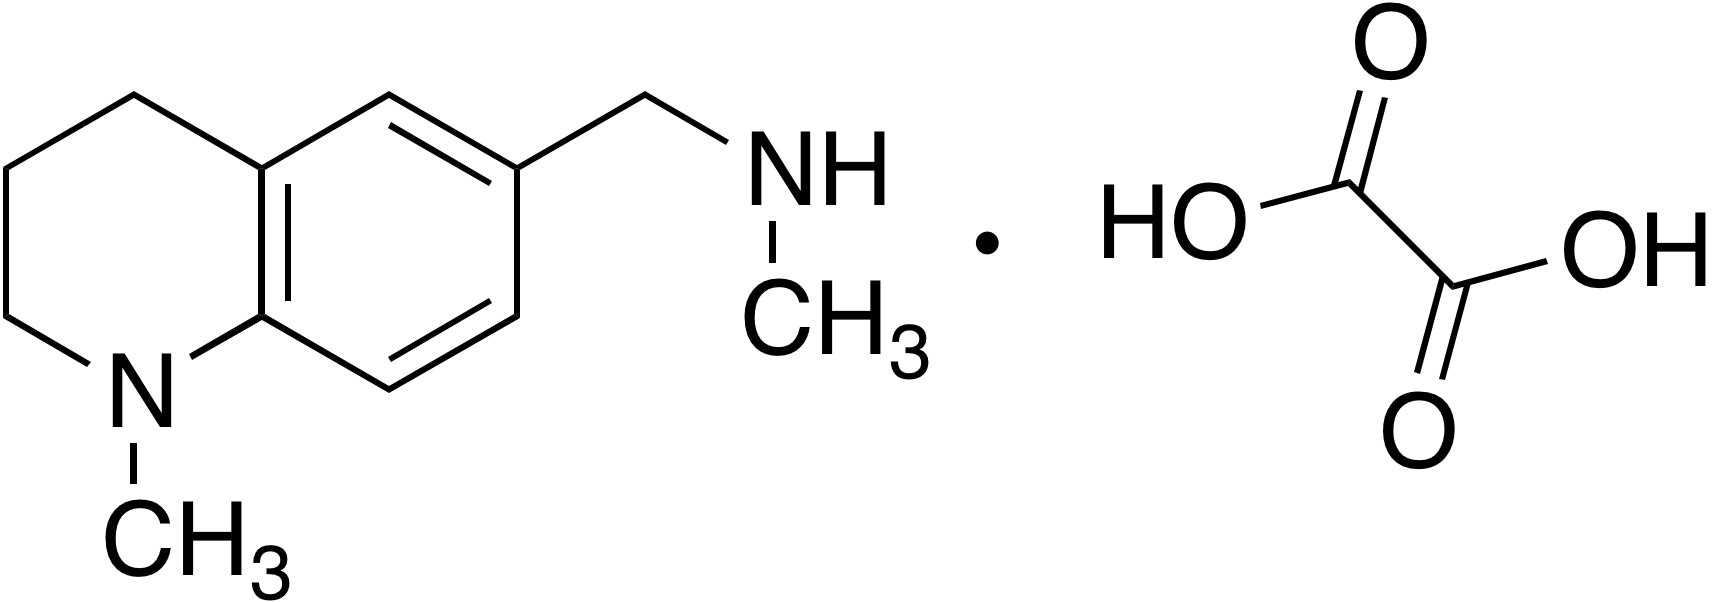 N,1-Dimethyl-1,2,3,4-tetrahydroquinoline-6-methylamine oxalate salt